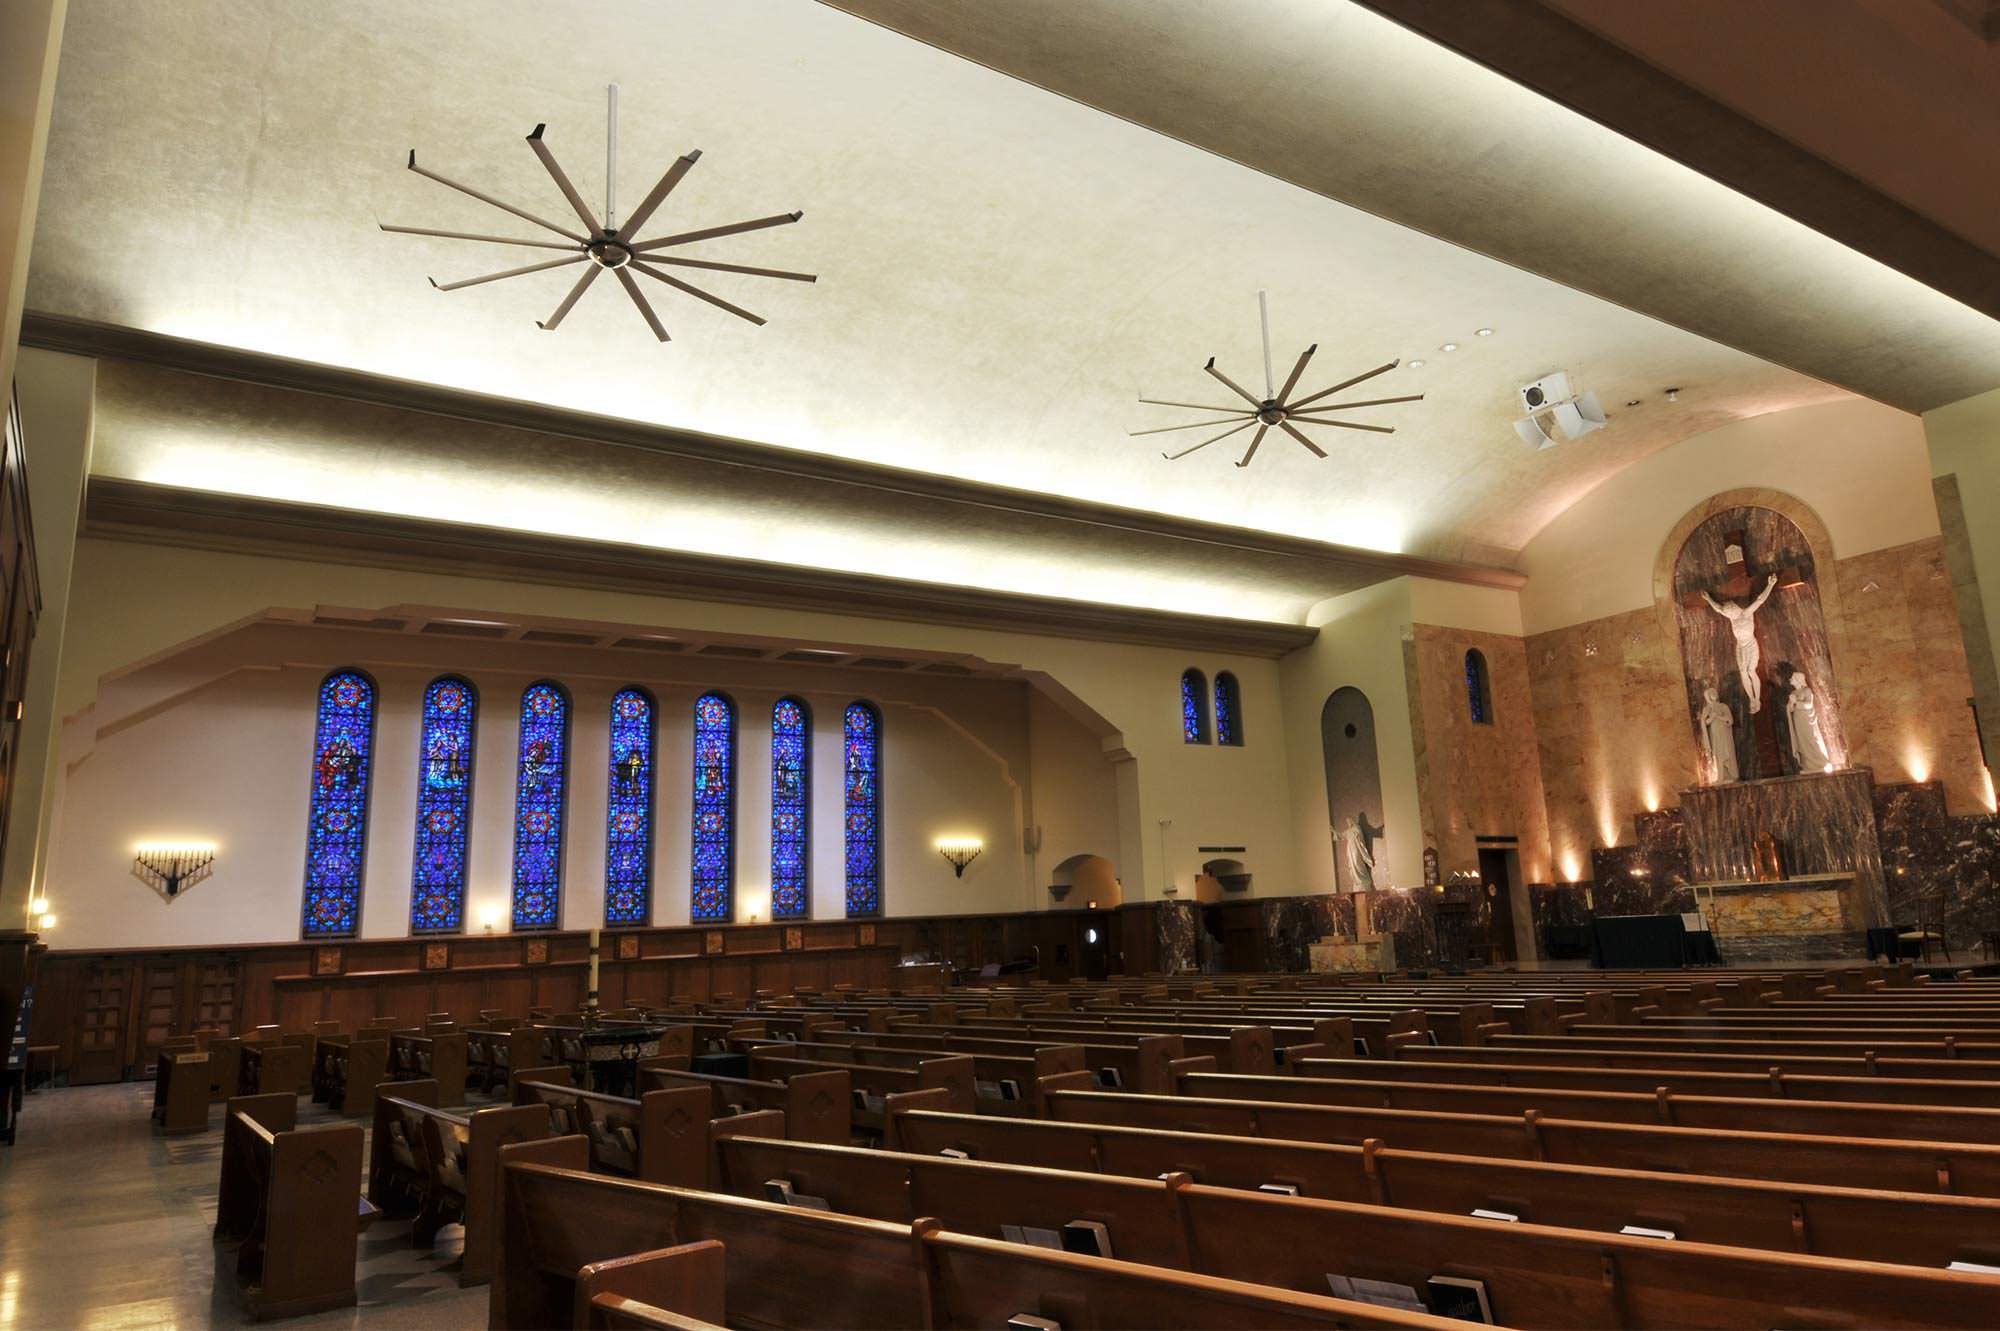 Church Sanctuary Ceiling Fans